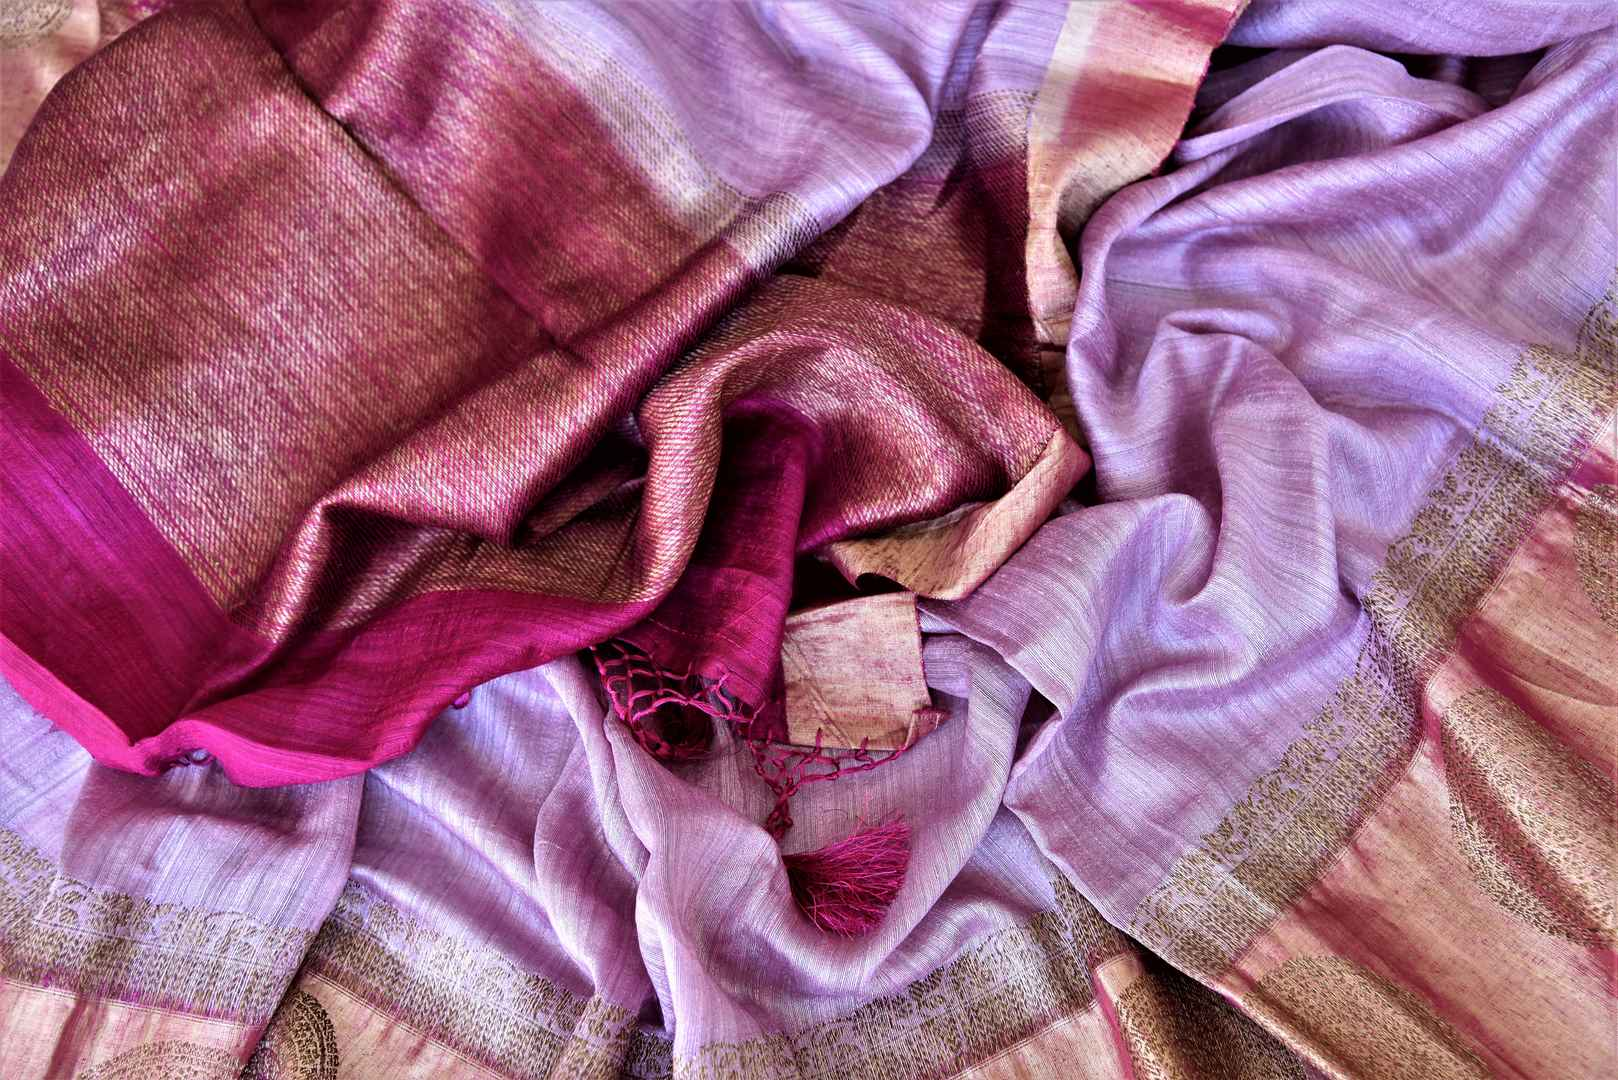 Buy beautiful lavender color tussar Banarasi saree online in USA with golden zari buta border. Be the center of attraction at weddings and parties with beautiful silk sarees, tussar sarees, embroidered sarees, partywear sarees, fancy sarees from Pure Elegance Indian fashion store in USA. -details